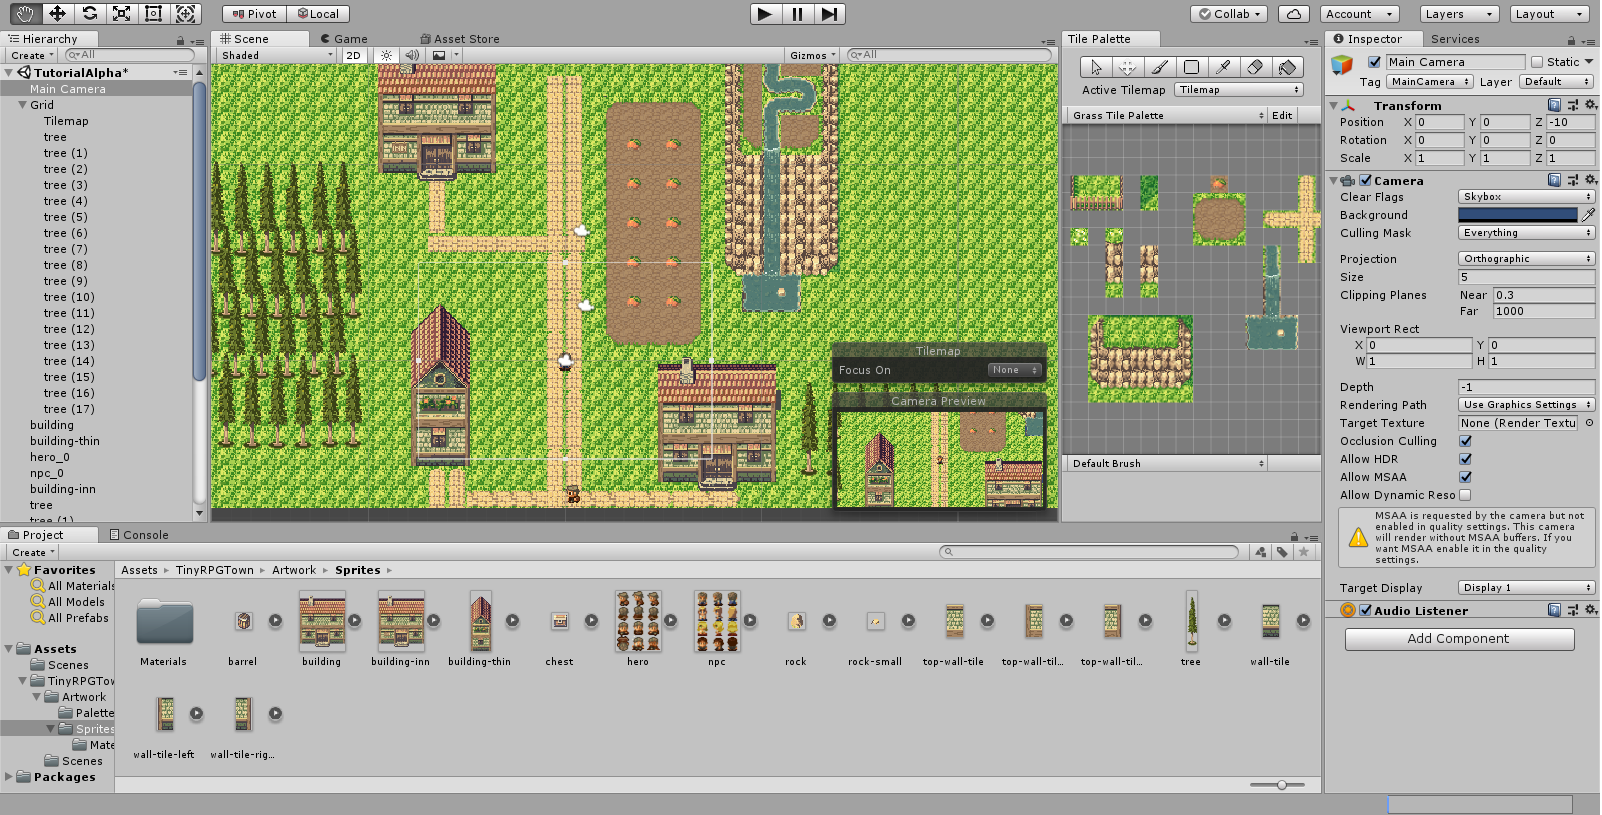 Screenshot of Unity software backend for game with display of landscape in center and building control options around the left, bottom, and right sides